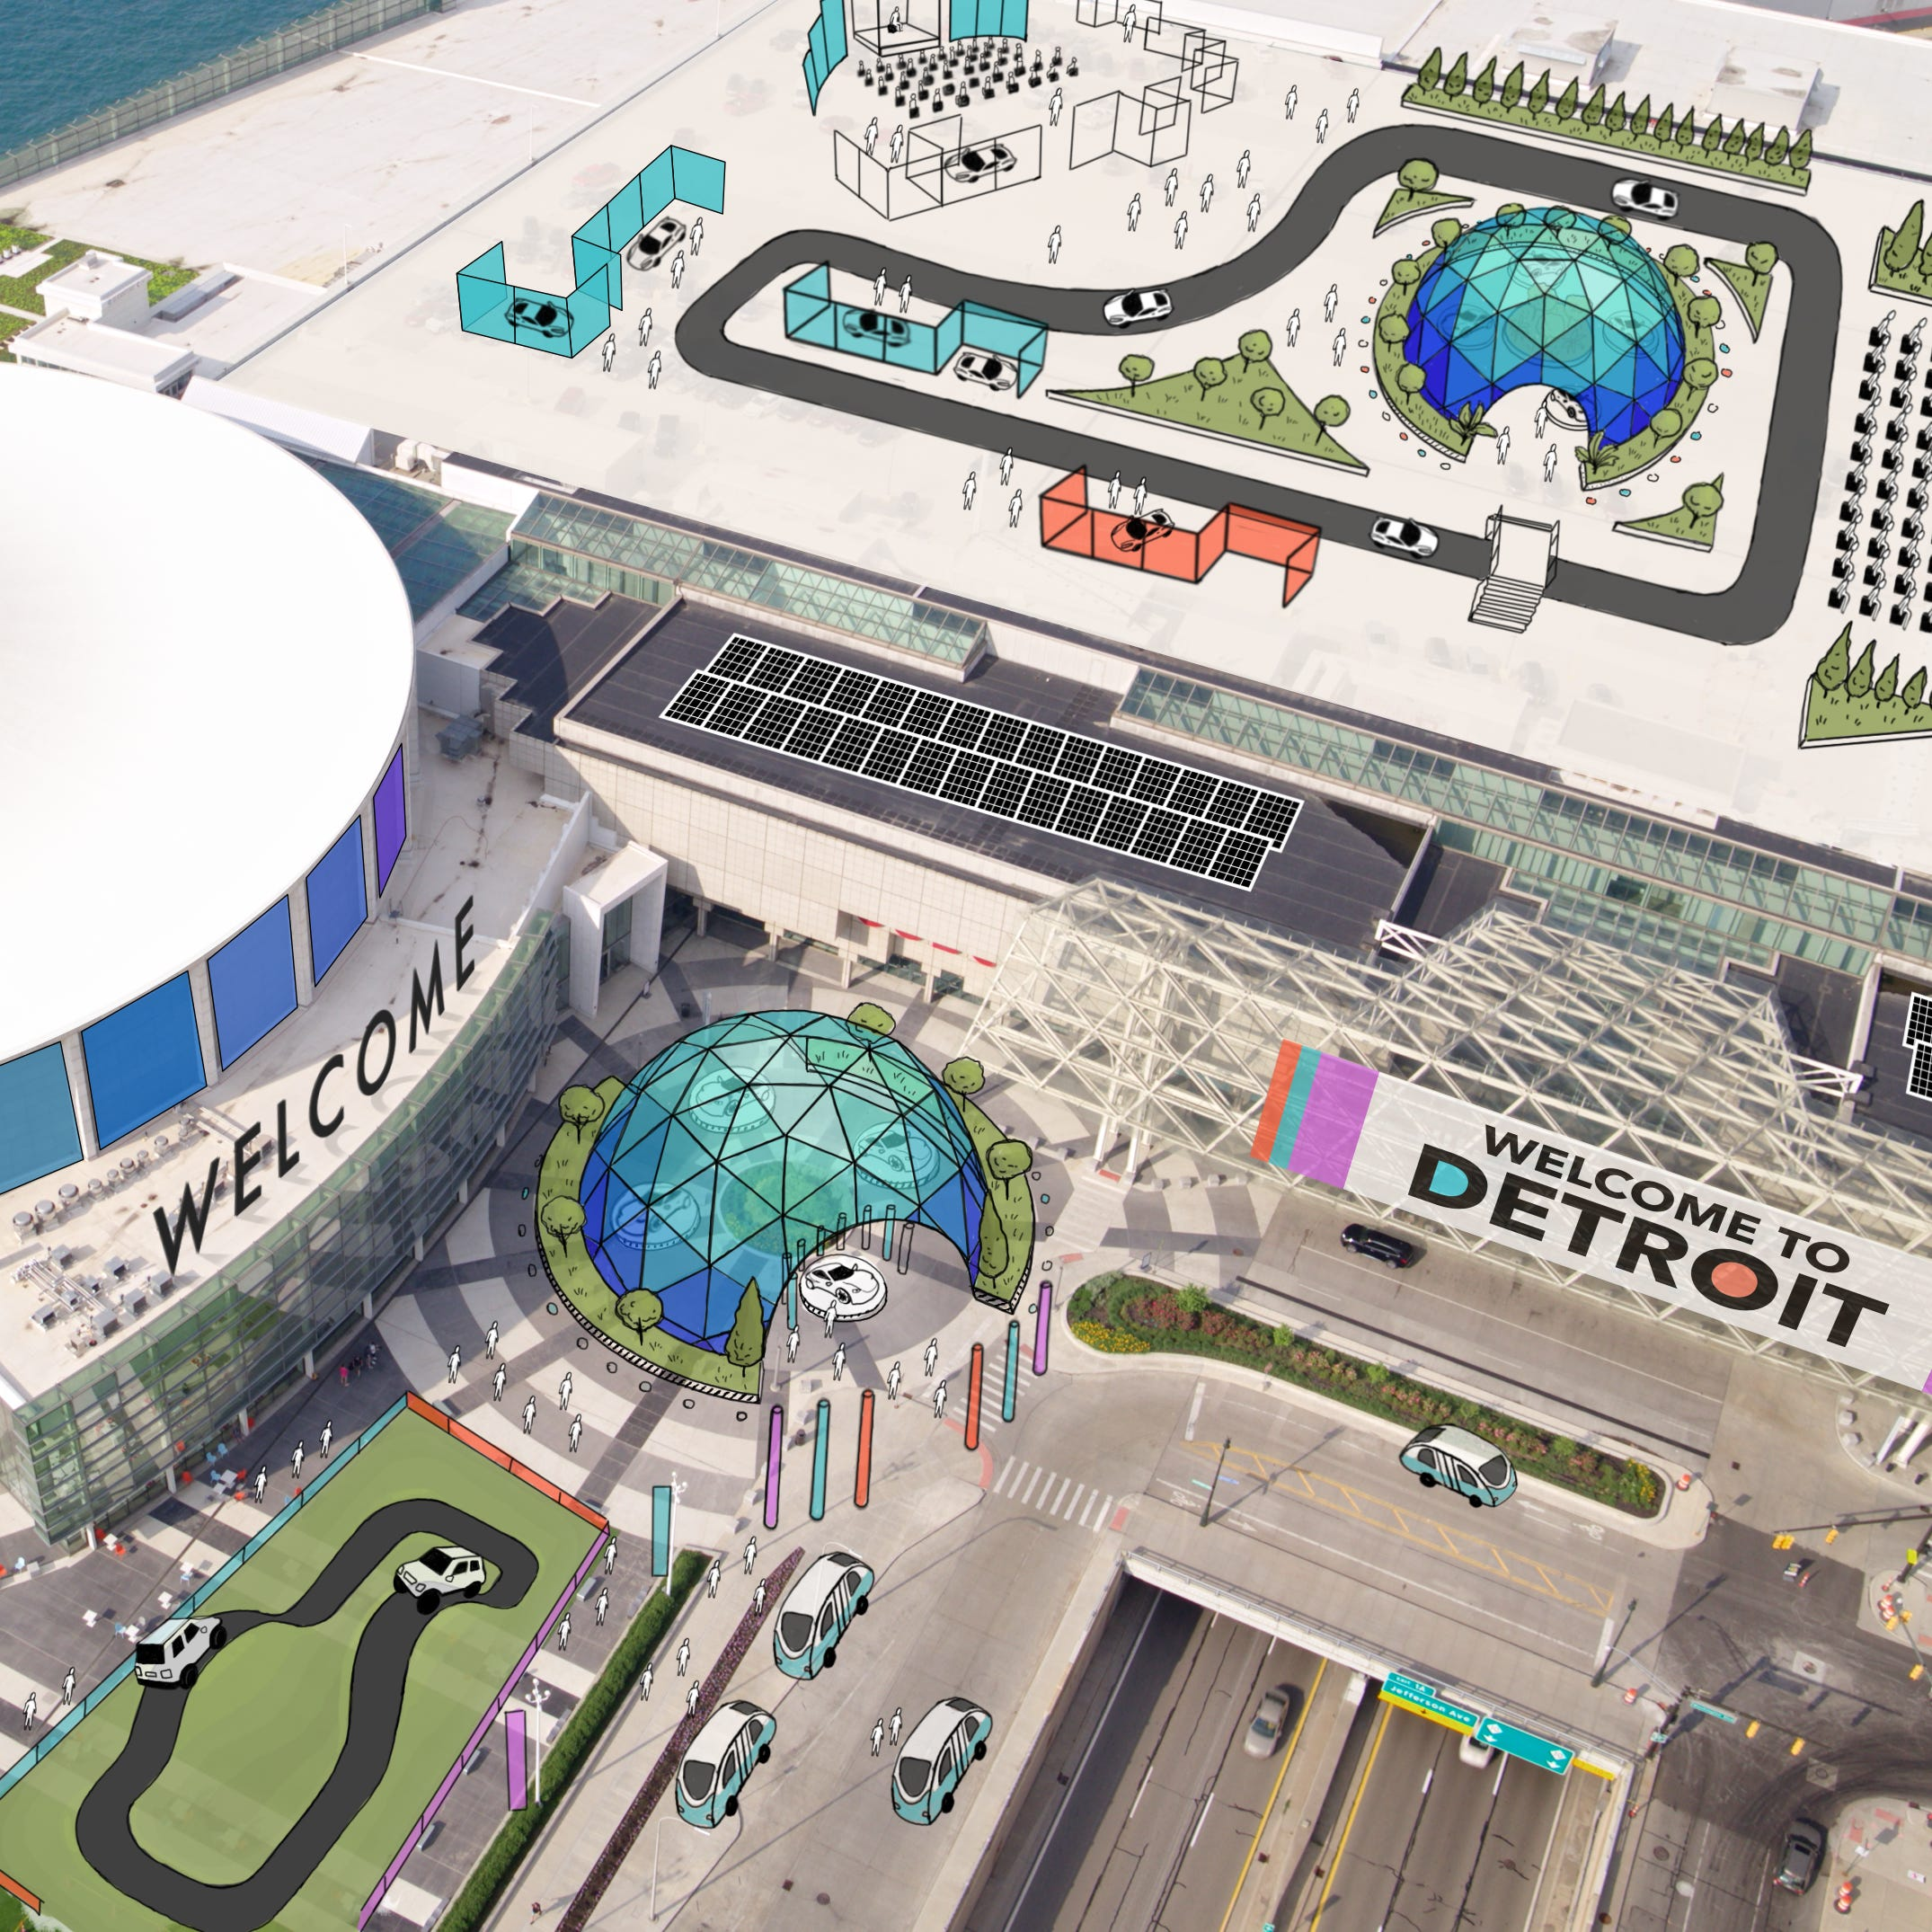 It's official: Auto show shifts to June in 2020, plans street festival